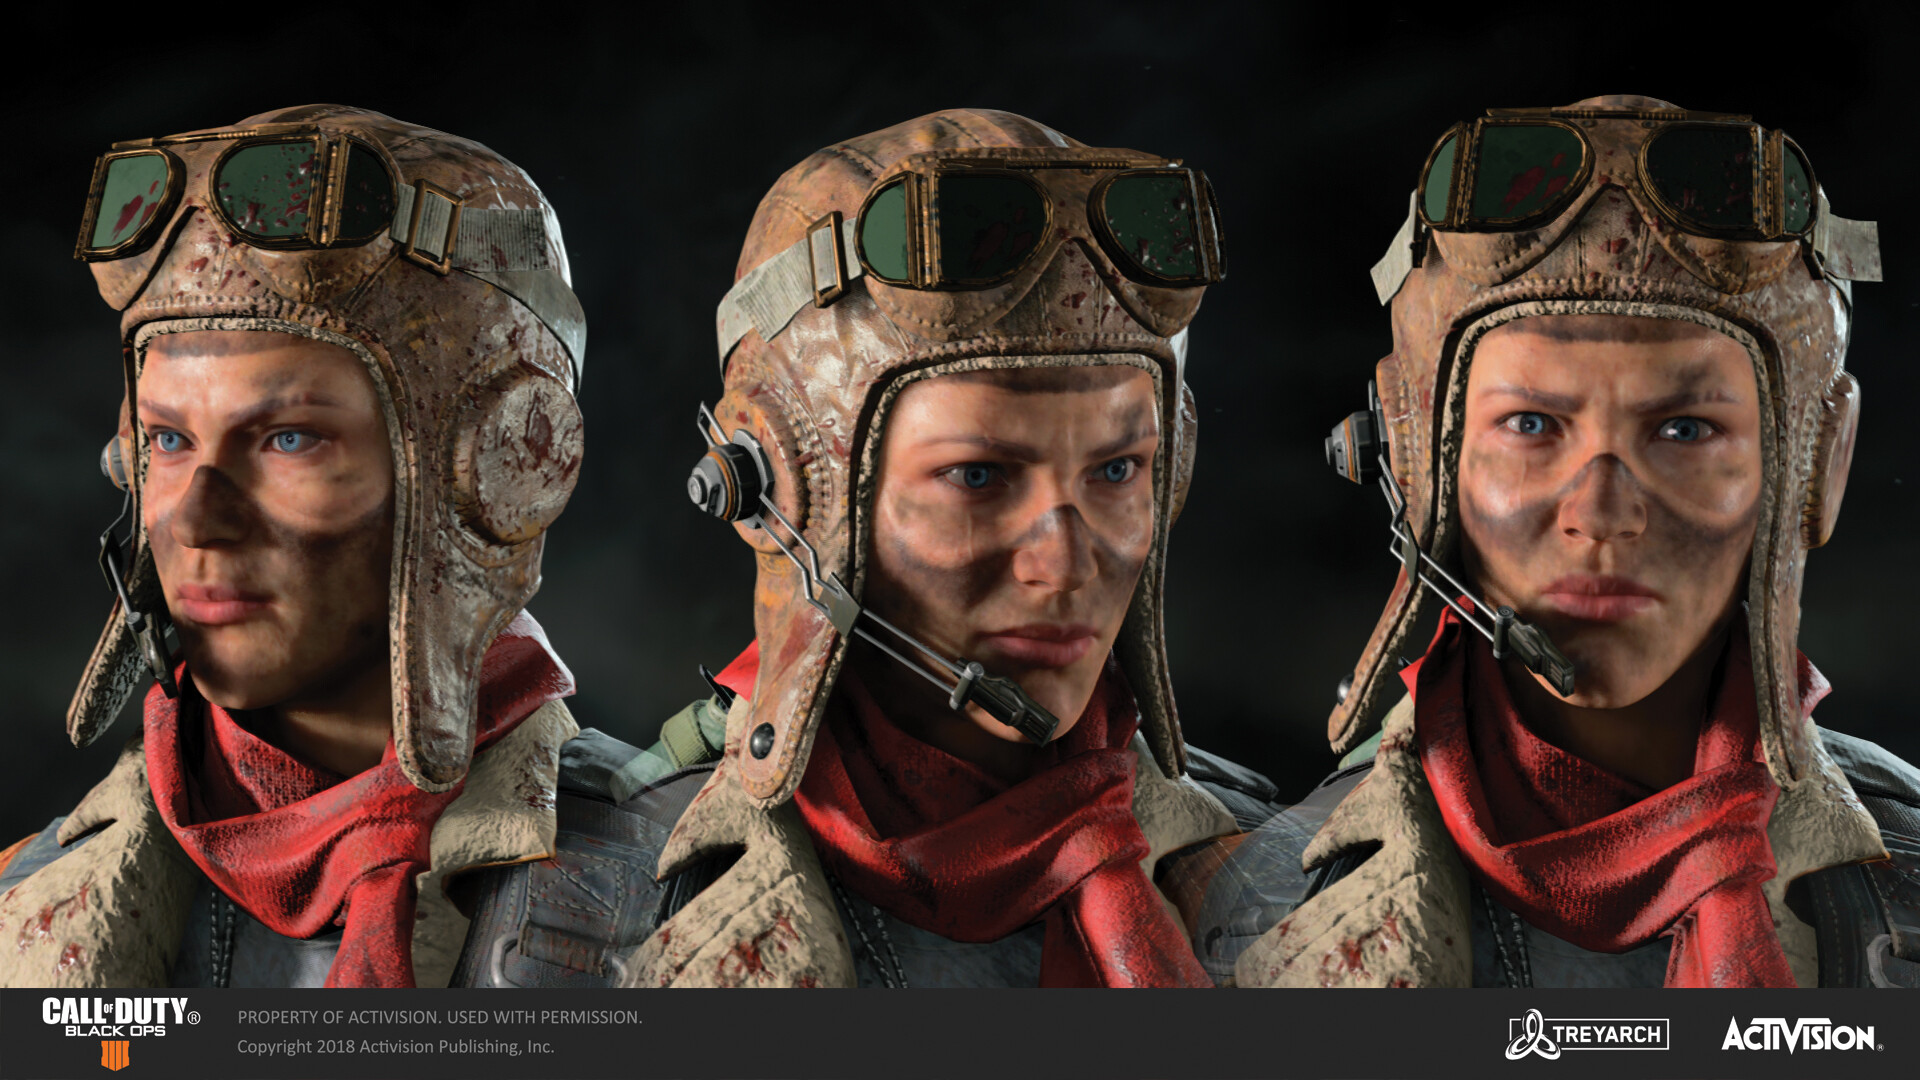 Body for this skin was designed by Karakter, and headgear/warpaint designed by MuYoung Kim.